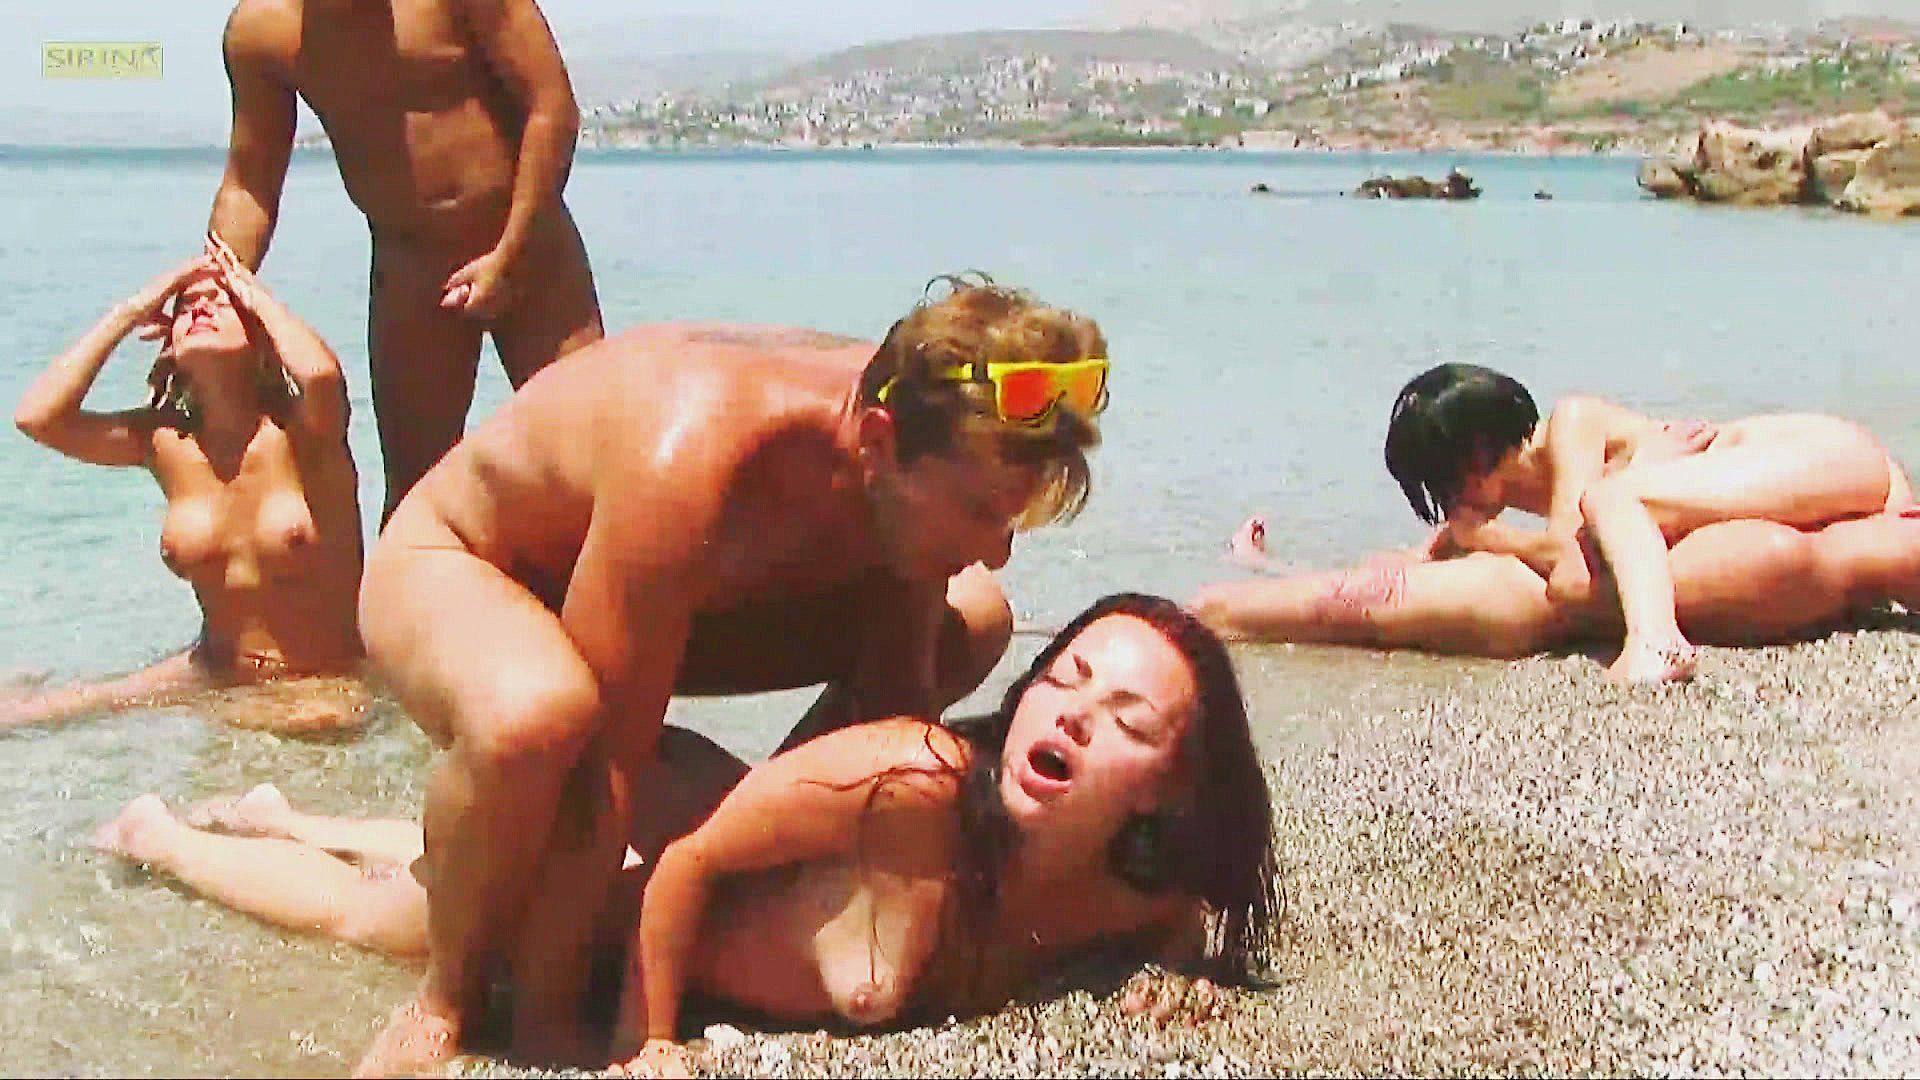 Beach Sexx sex orgy at the beachsirina entertainment | xhamster premium